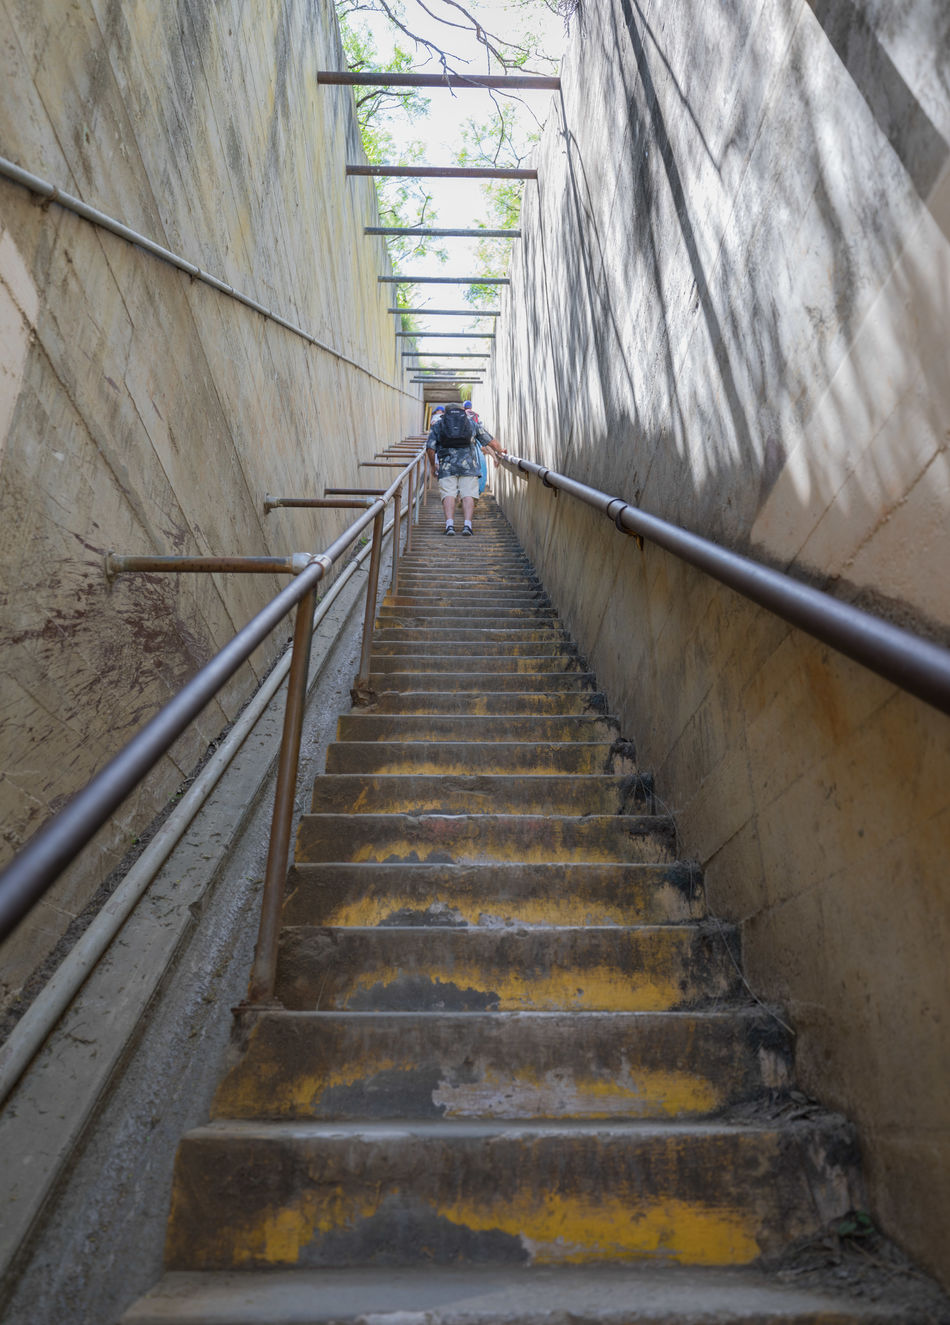 Stair Climbing on Diamond Head, Oahu, Hawaii Adult Architecture Built Structure Climbing Day Hand Rail Hawaii Low Angle View One Person Outdoors People Railing Rails Real People Staircase Stairs Steps Steps And Staircases The Way Forward USA Walking